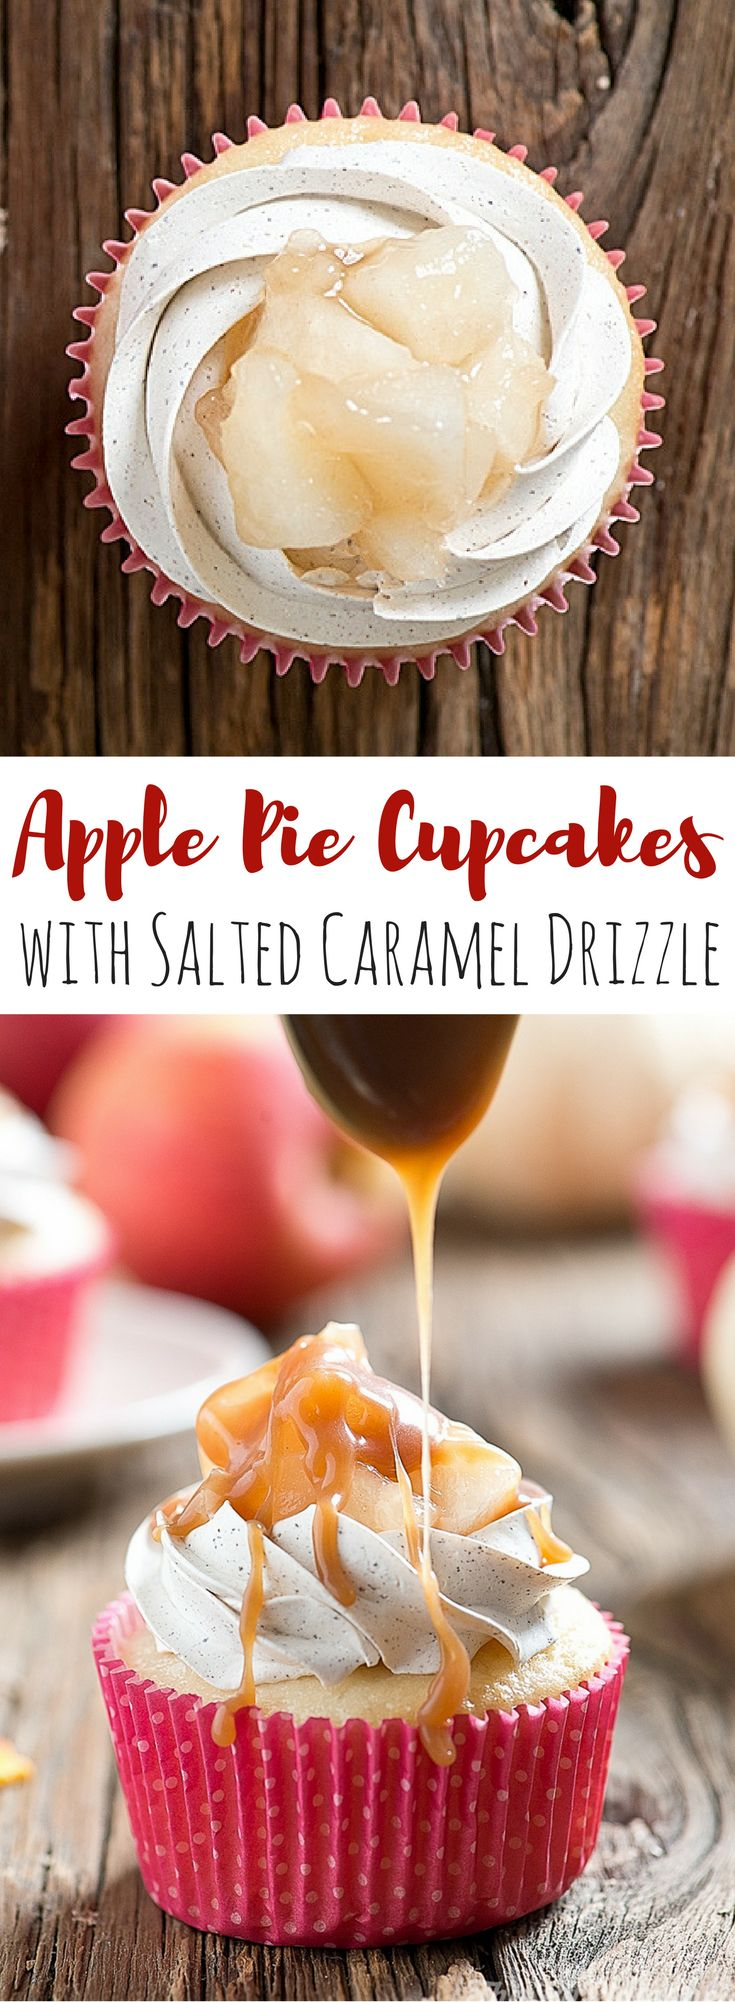 Apple Pie Cupcakes with Salted Caramel. A vanilla bean cupcake topped with cinnamon swiss meringue icing, apple pie filling and salted caramel drizzle! ~ thislilpiglet.net